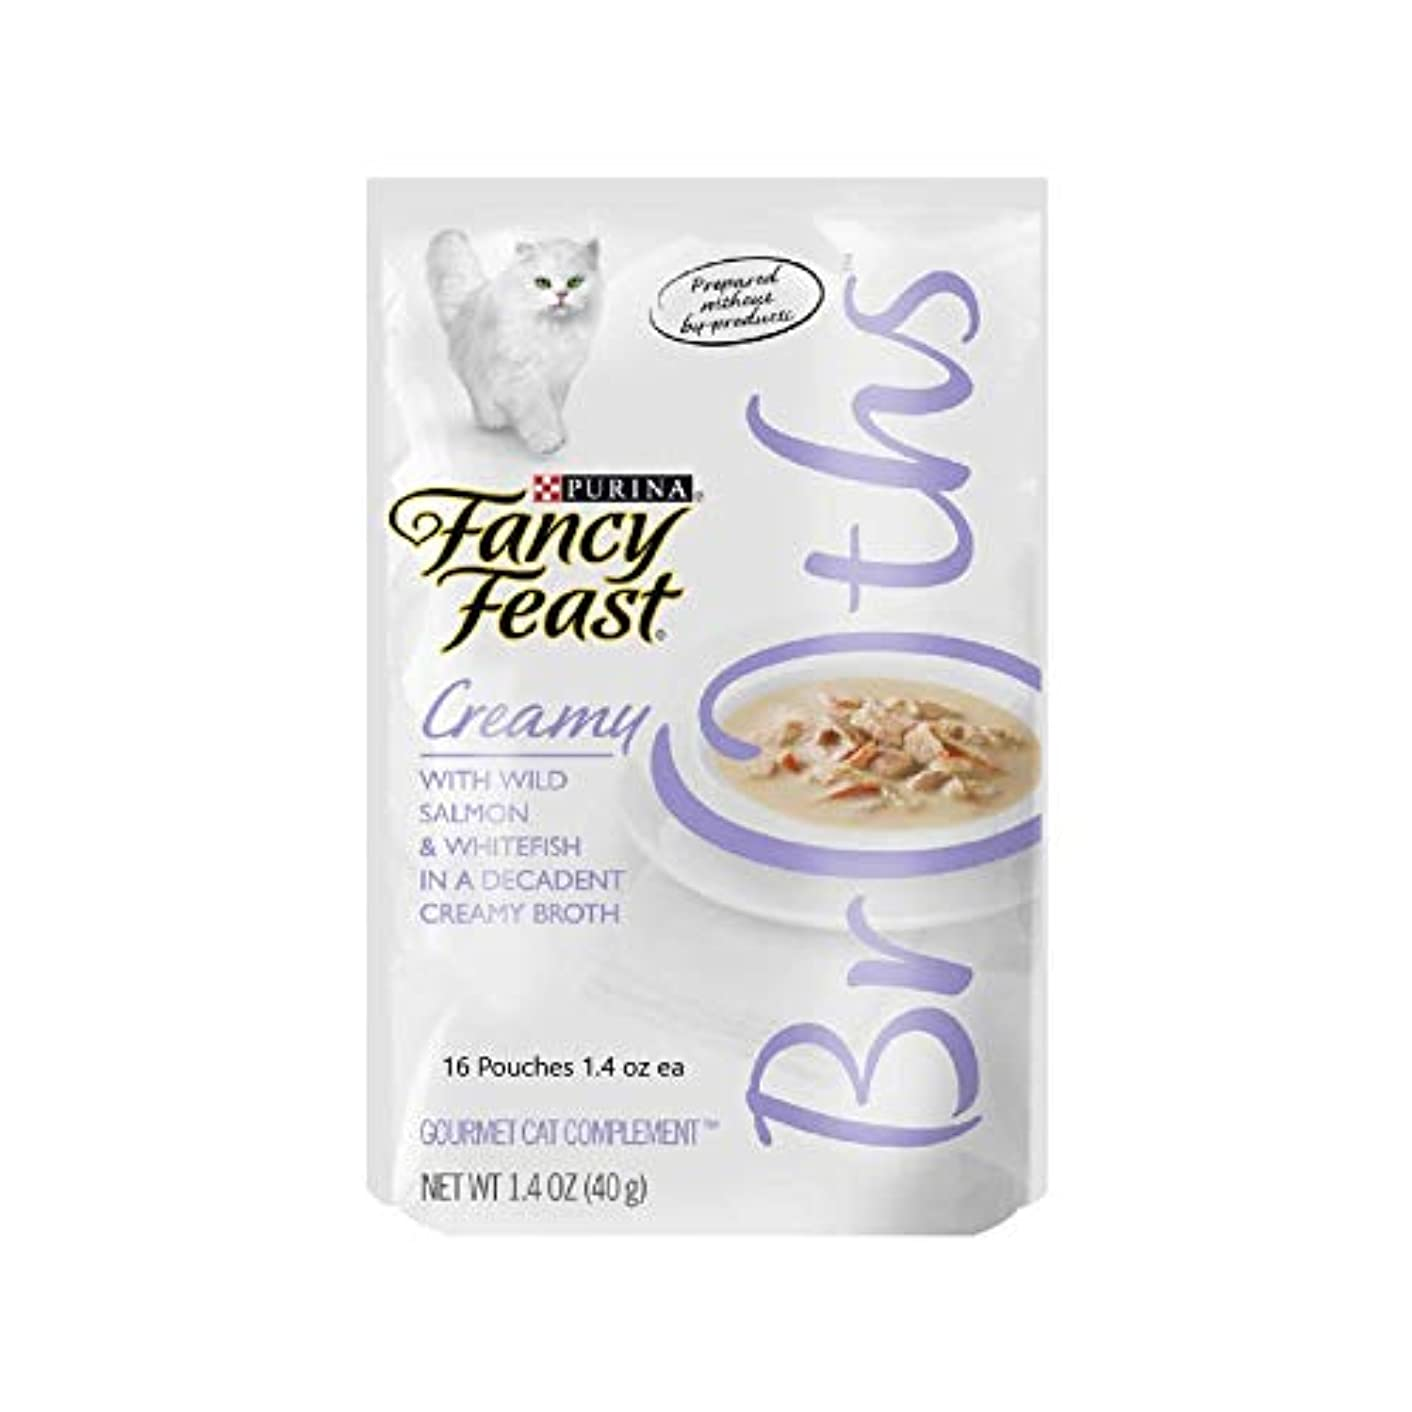 16 Pouches of Fancy Feast Creamy Broths with Wild Salmon & Whitefish Cat Treats/Dry Food Topper Not Meant to Replace Meals. 1.4-oz ea